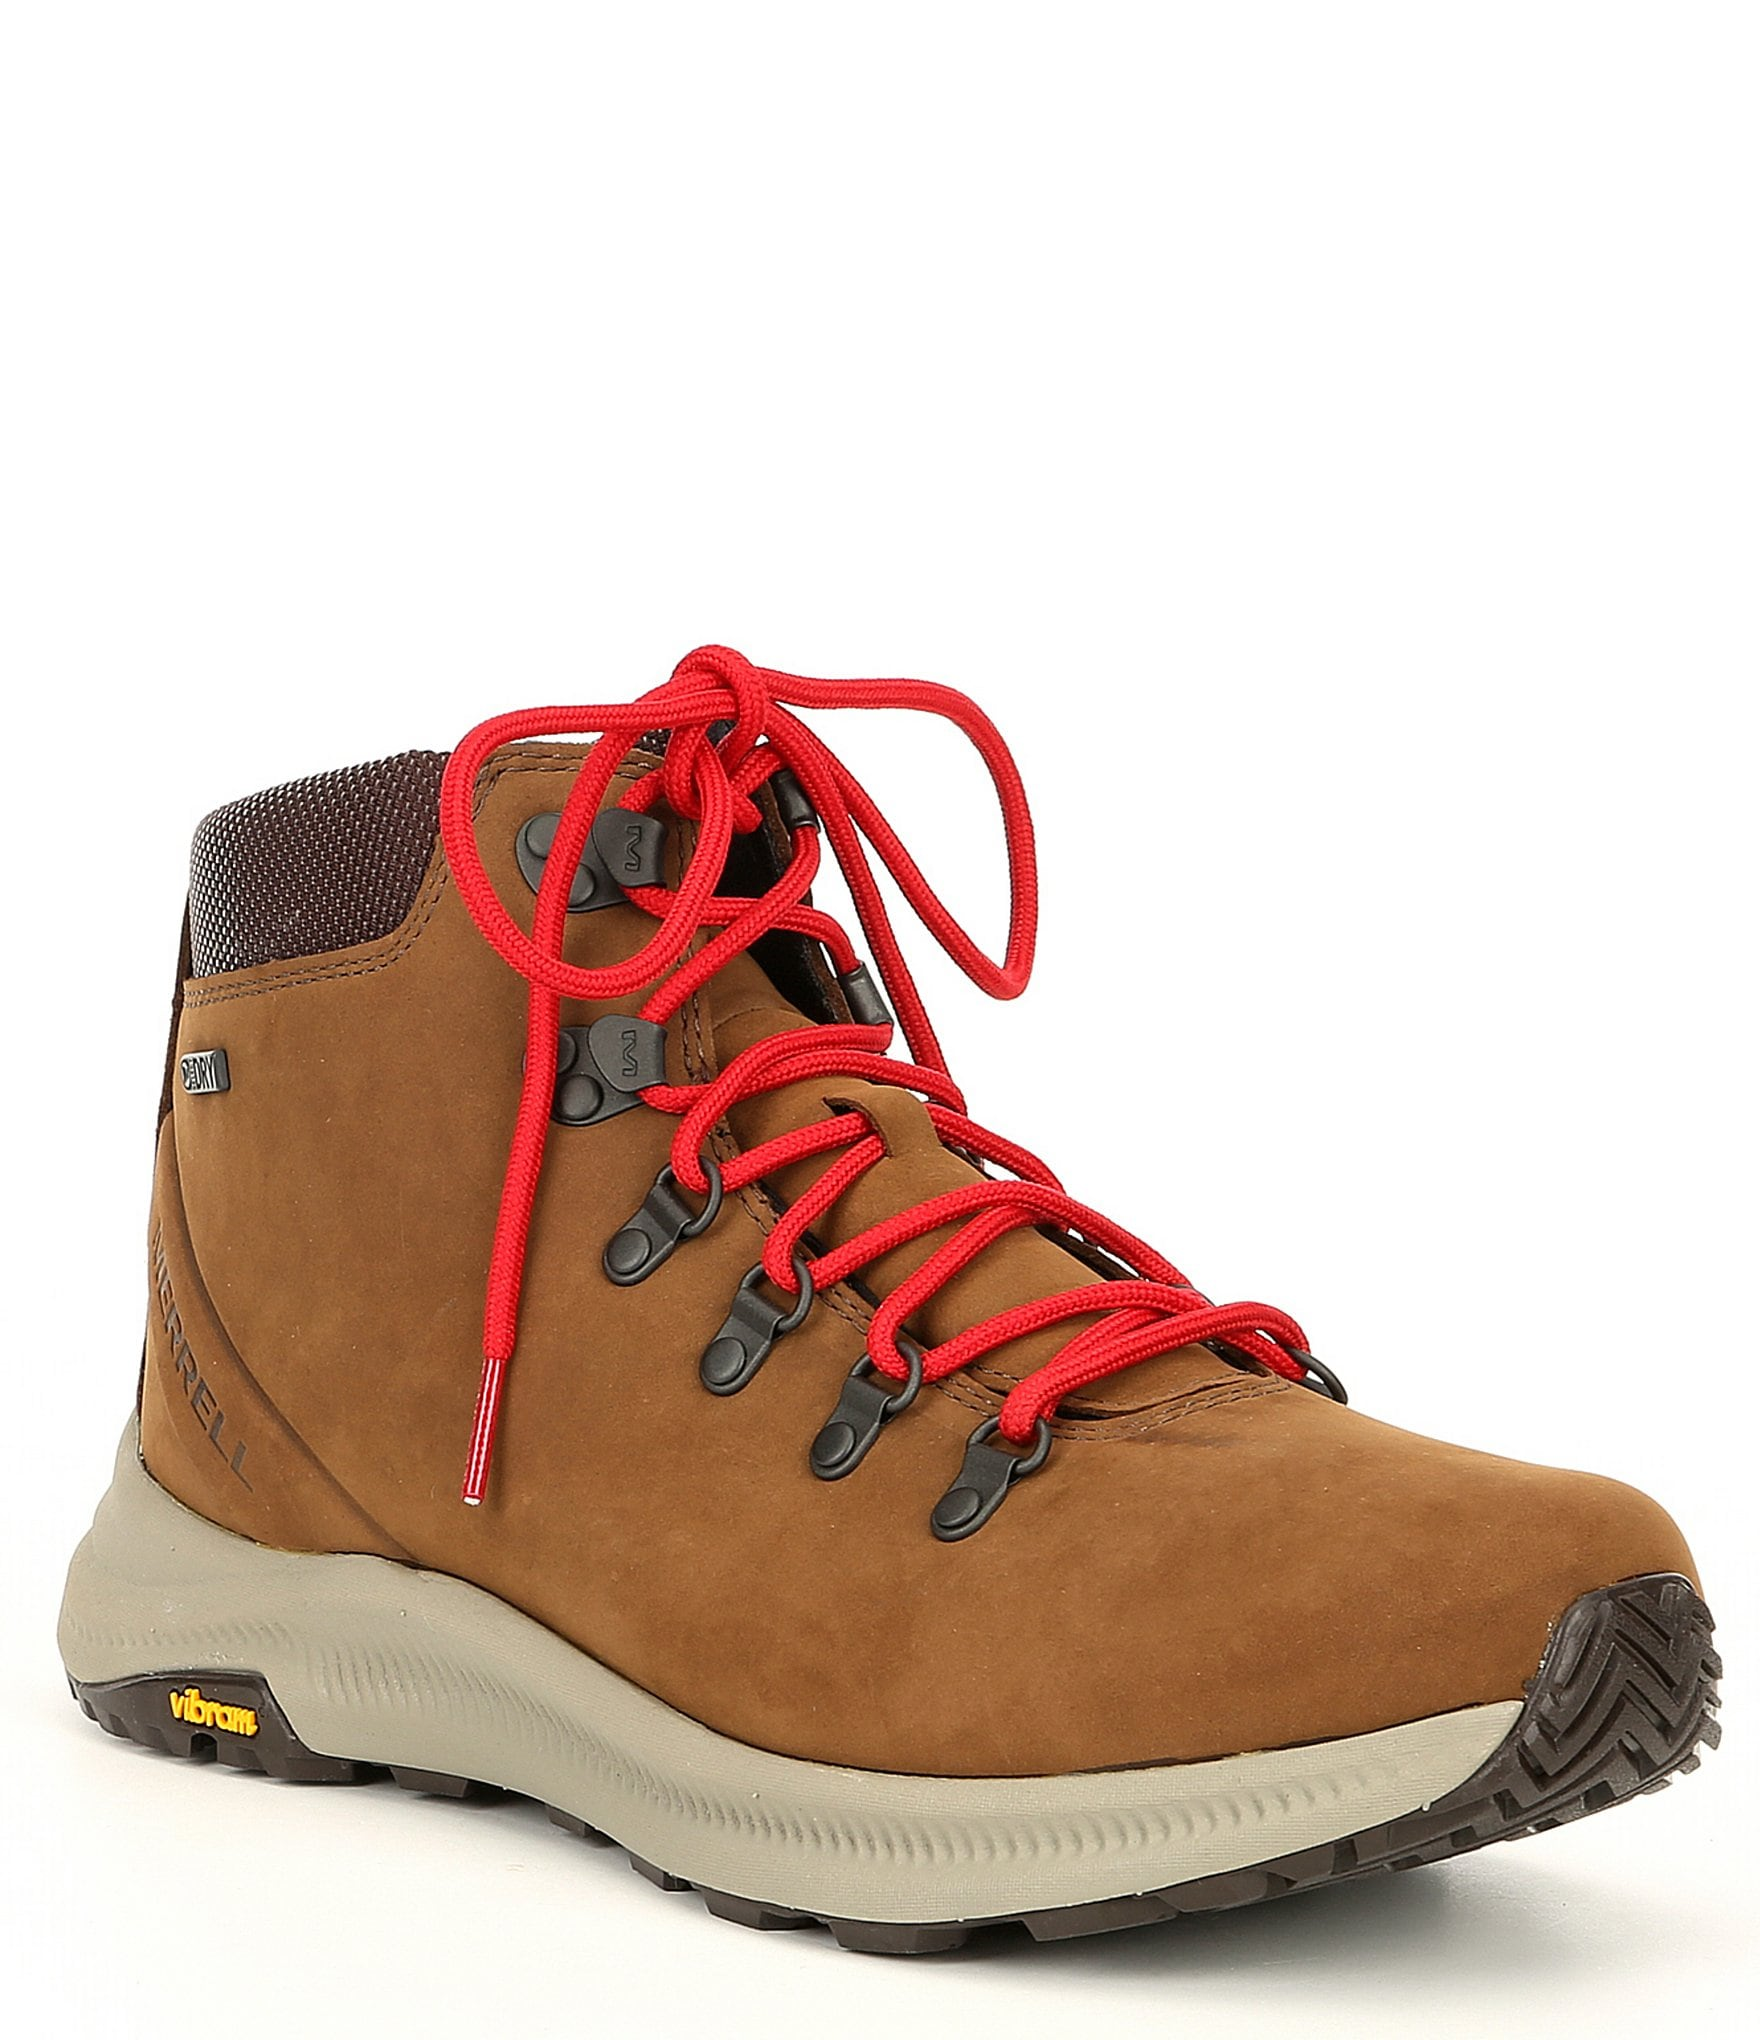 Ontario Mid Waterproof Leather Boots